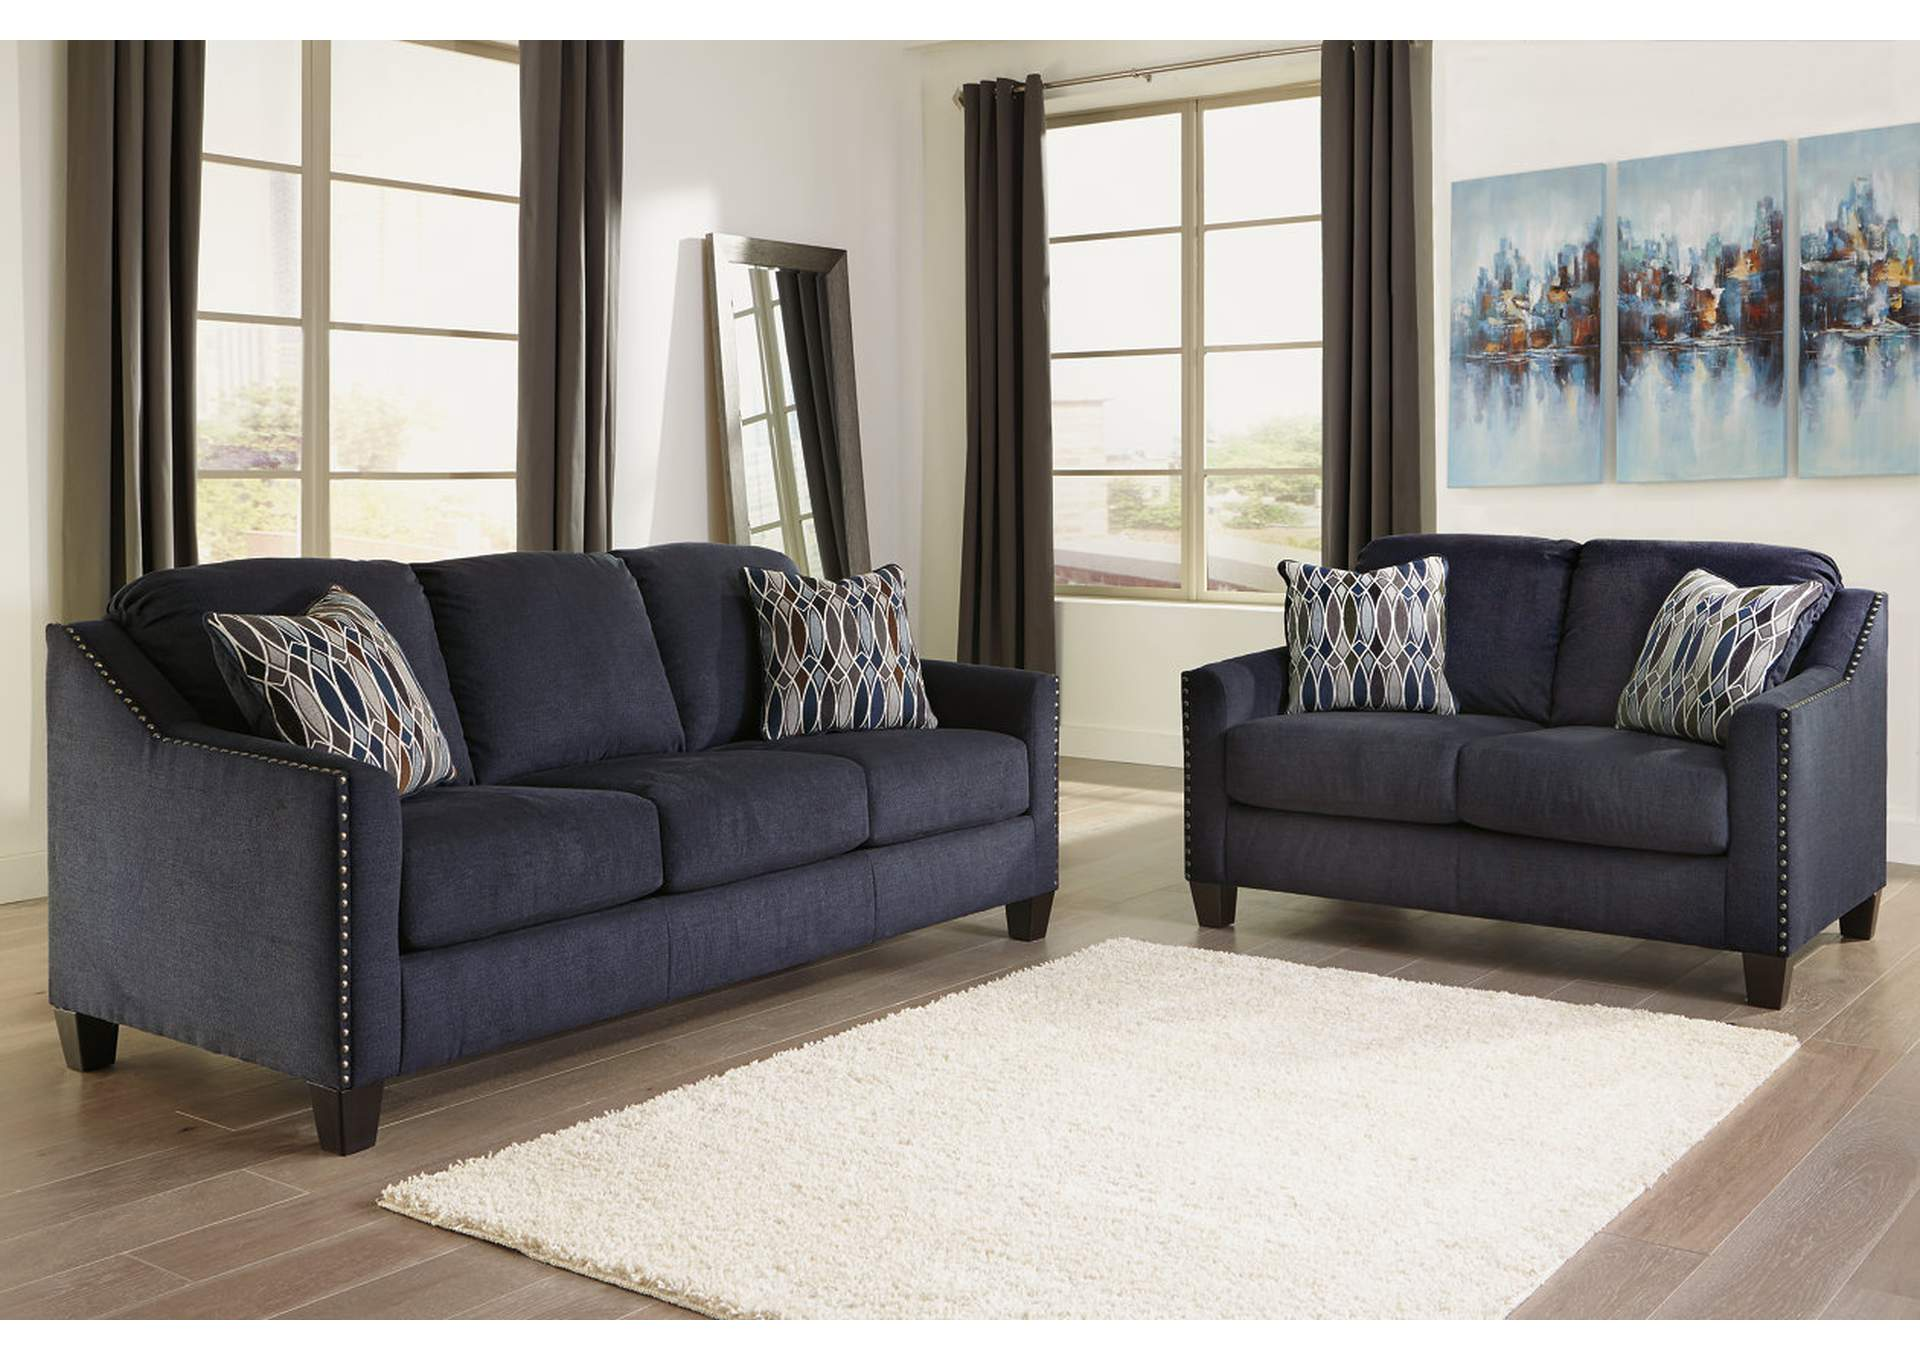 Creeal Heights Sofa and Loveseat,Benchcraft